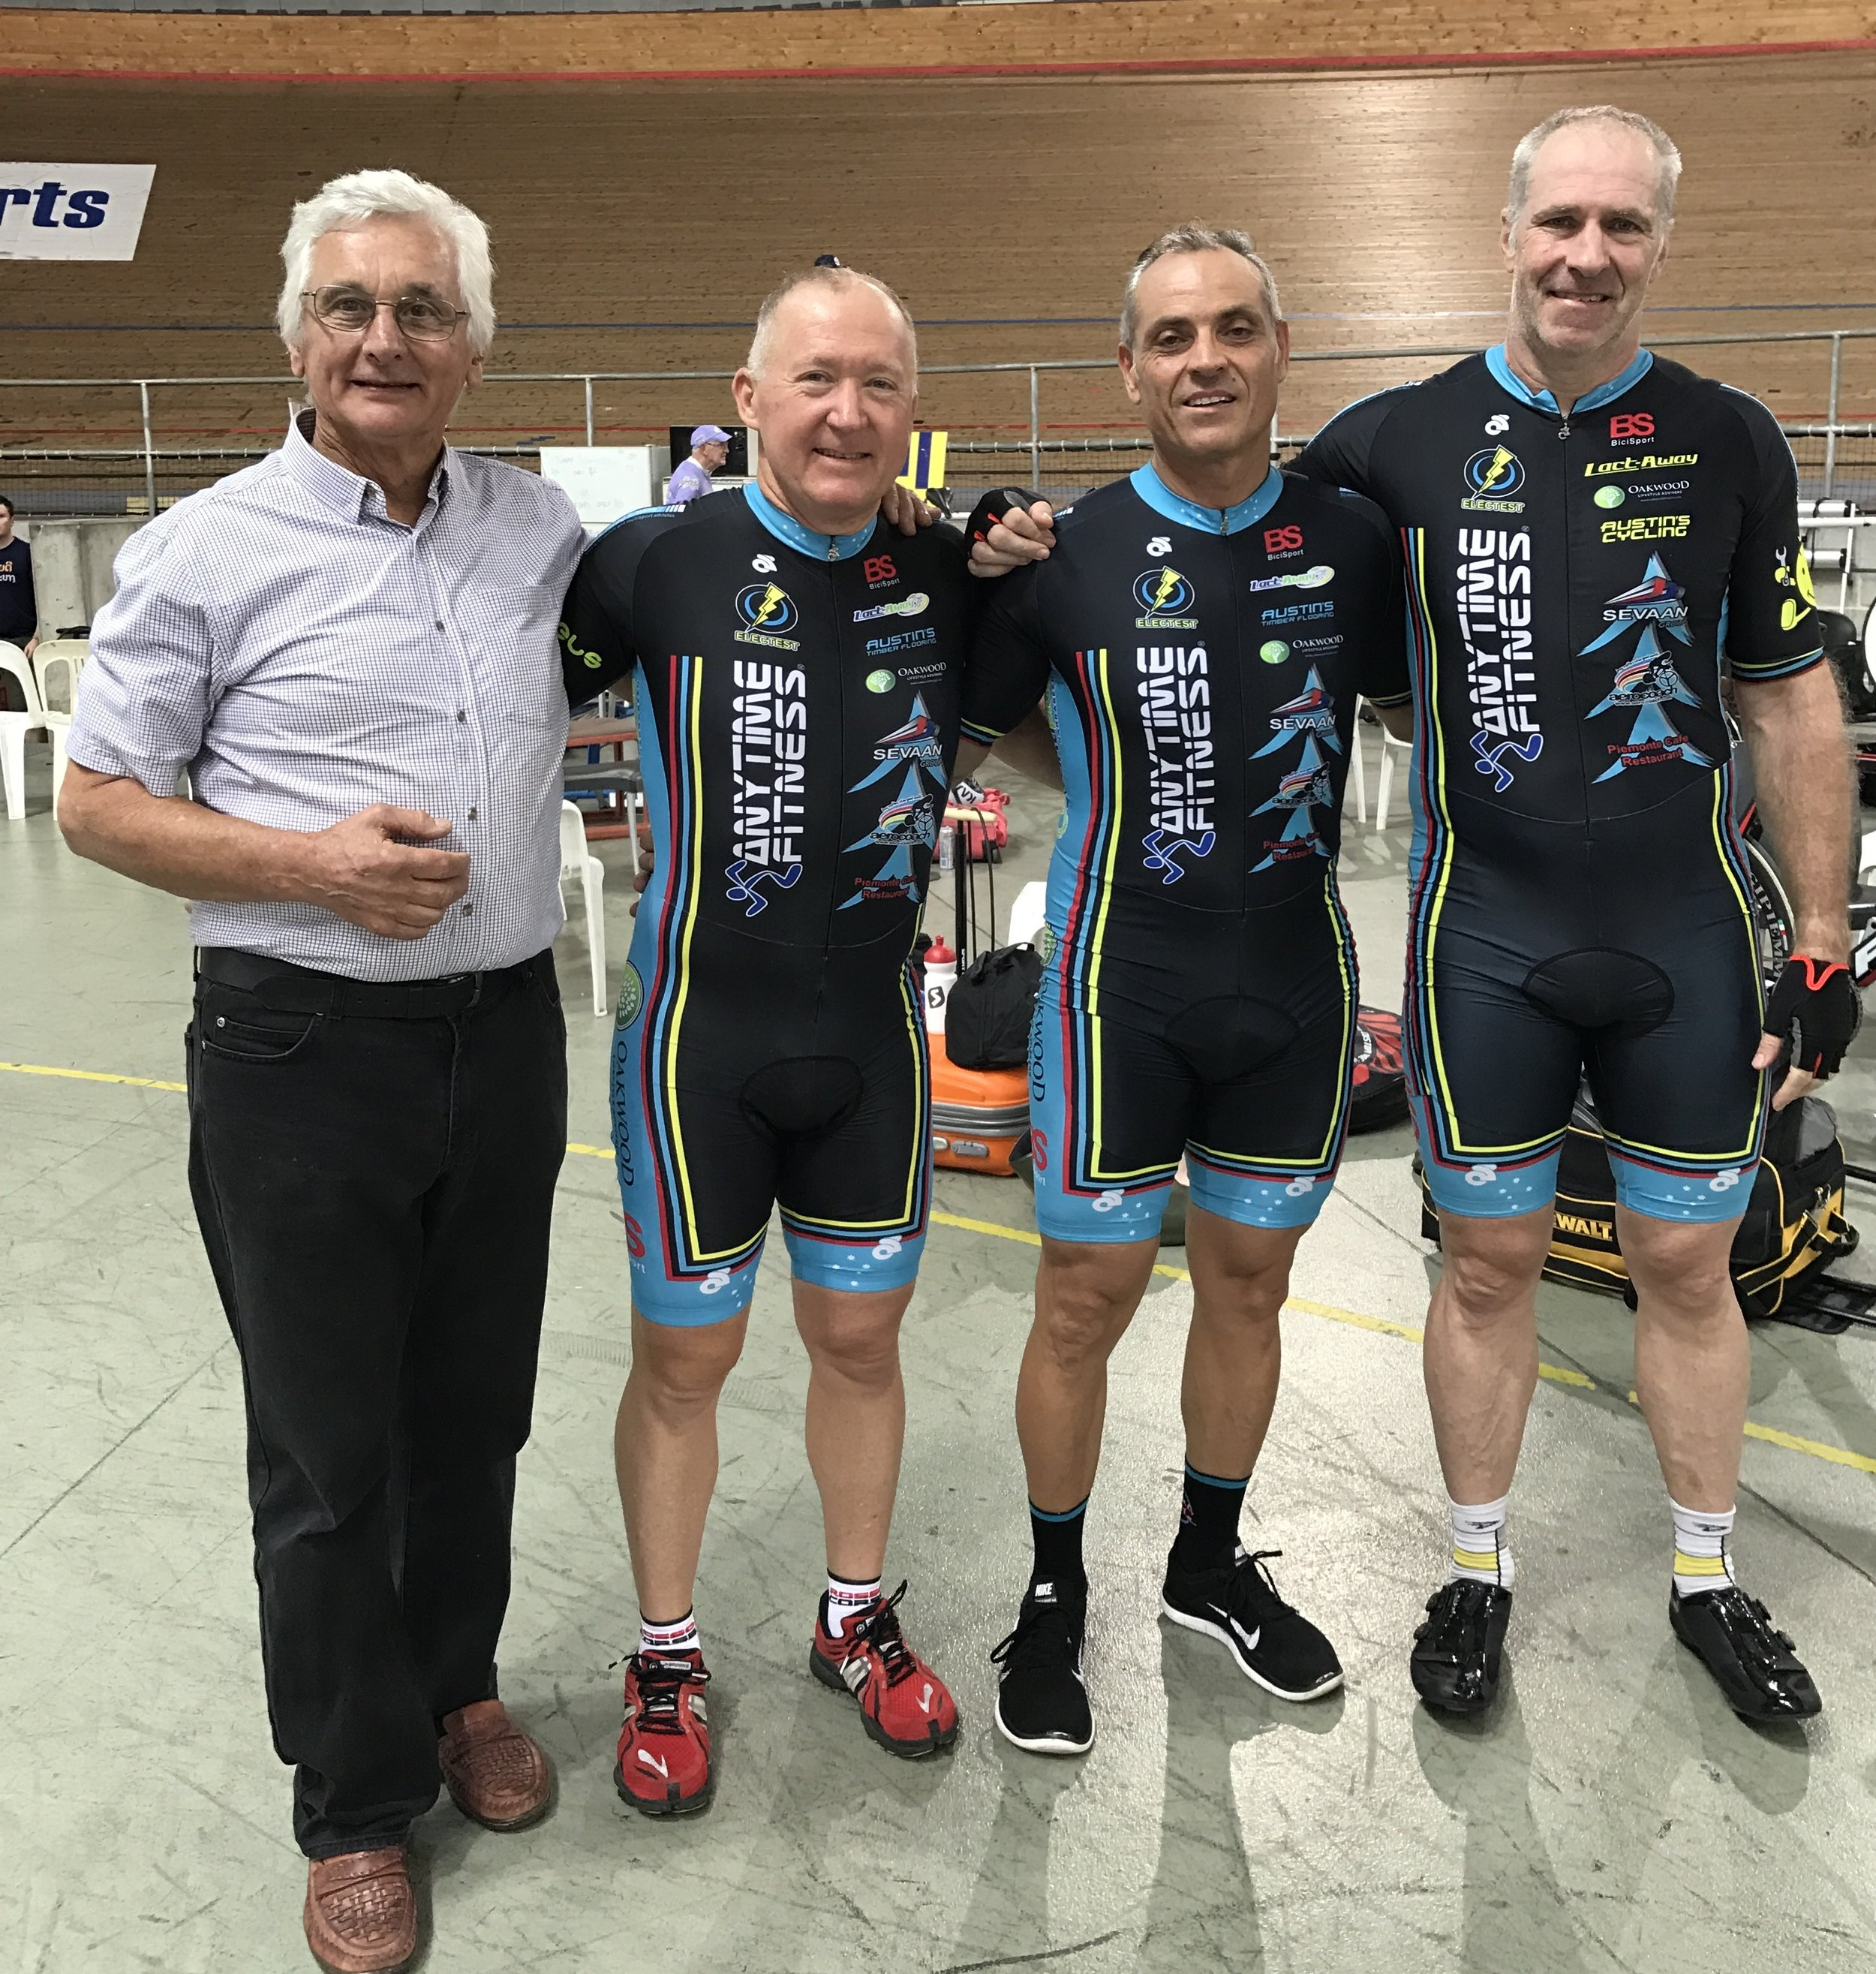 National Masters Track 2017 - BiciSport Team Sprint squad took 4th in a great ride. John Crouchley (Coach), Graham Cockerton, Dom Zumbo & James Thornton